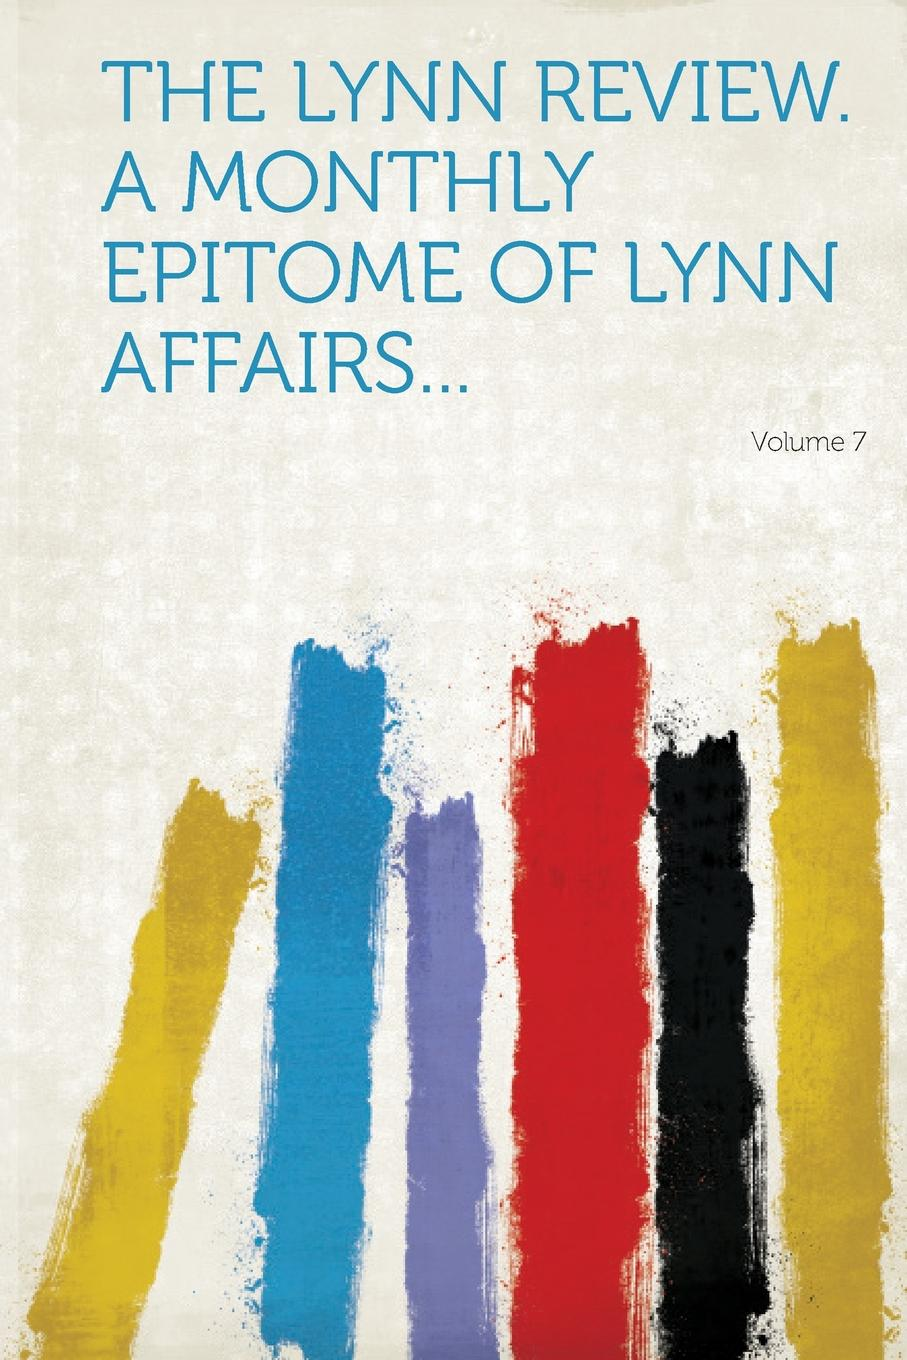 The Lynn Review. a Monthly Epitome of Lynn Affairs... Volume 7